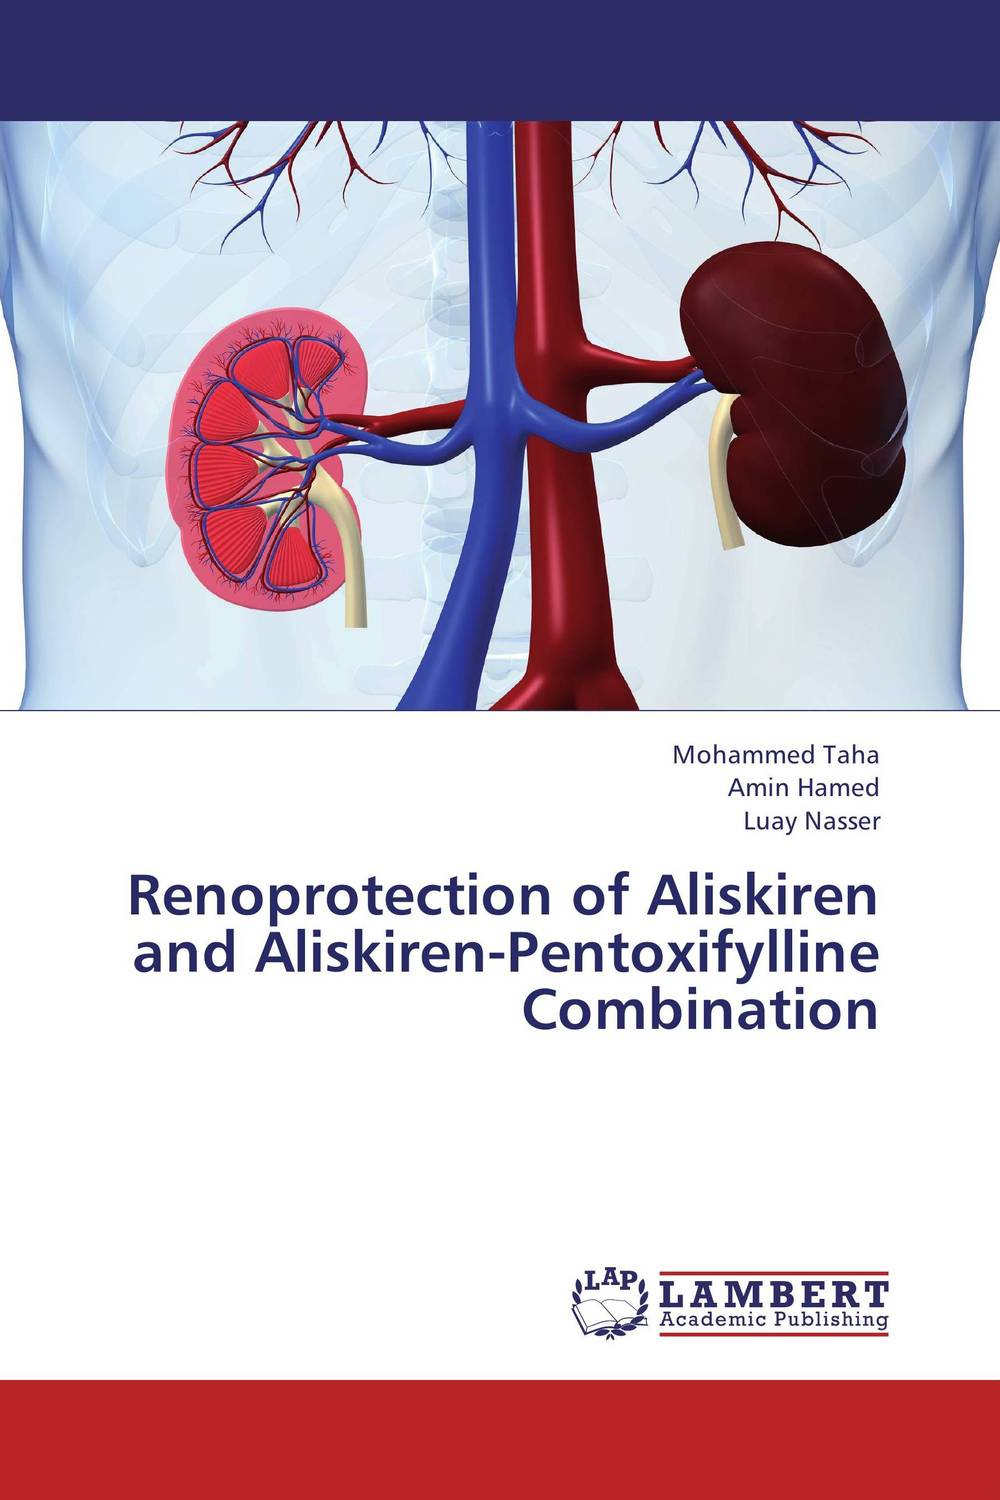 Renoprotection of Aliskiren and Aliskiren-Pentoxifylline Combination lysaght contributions to nephrology – disputed issues in renal failure therapy